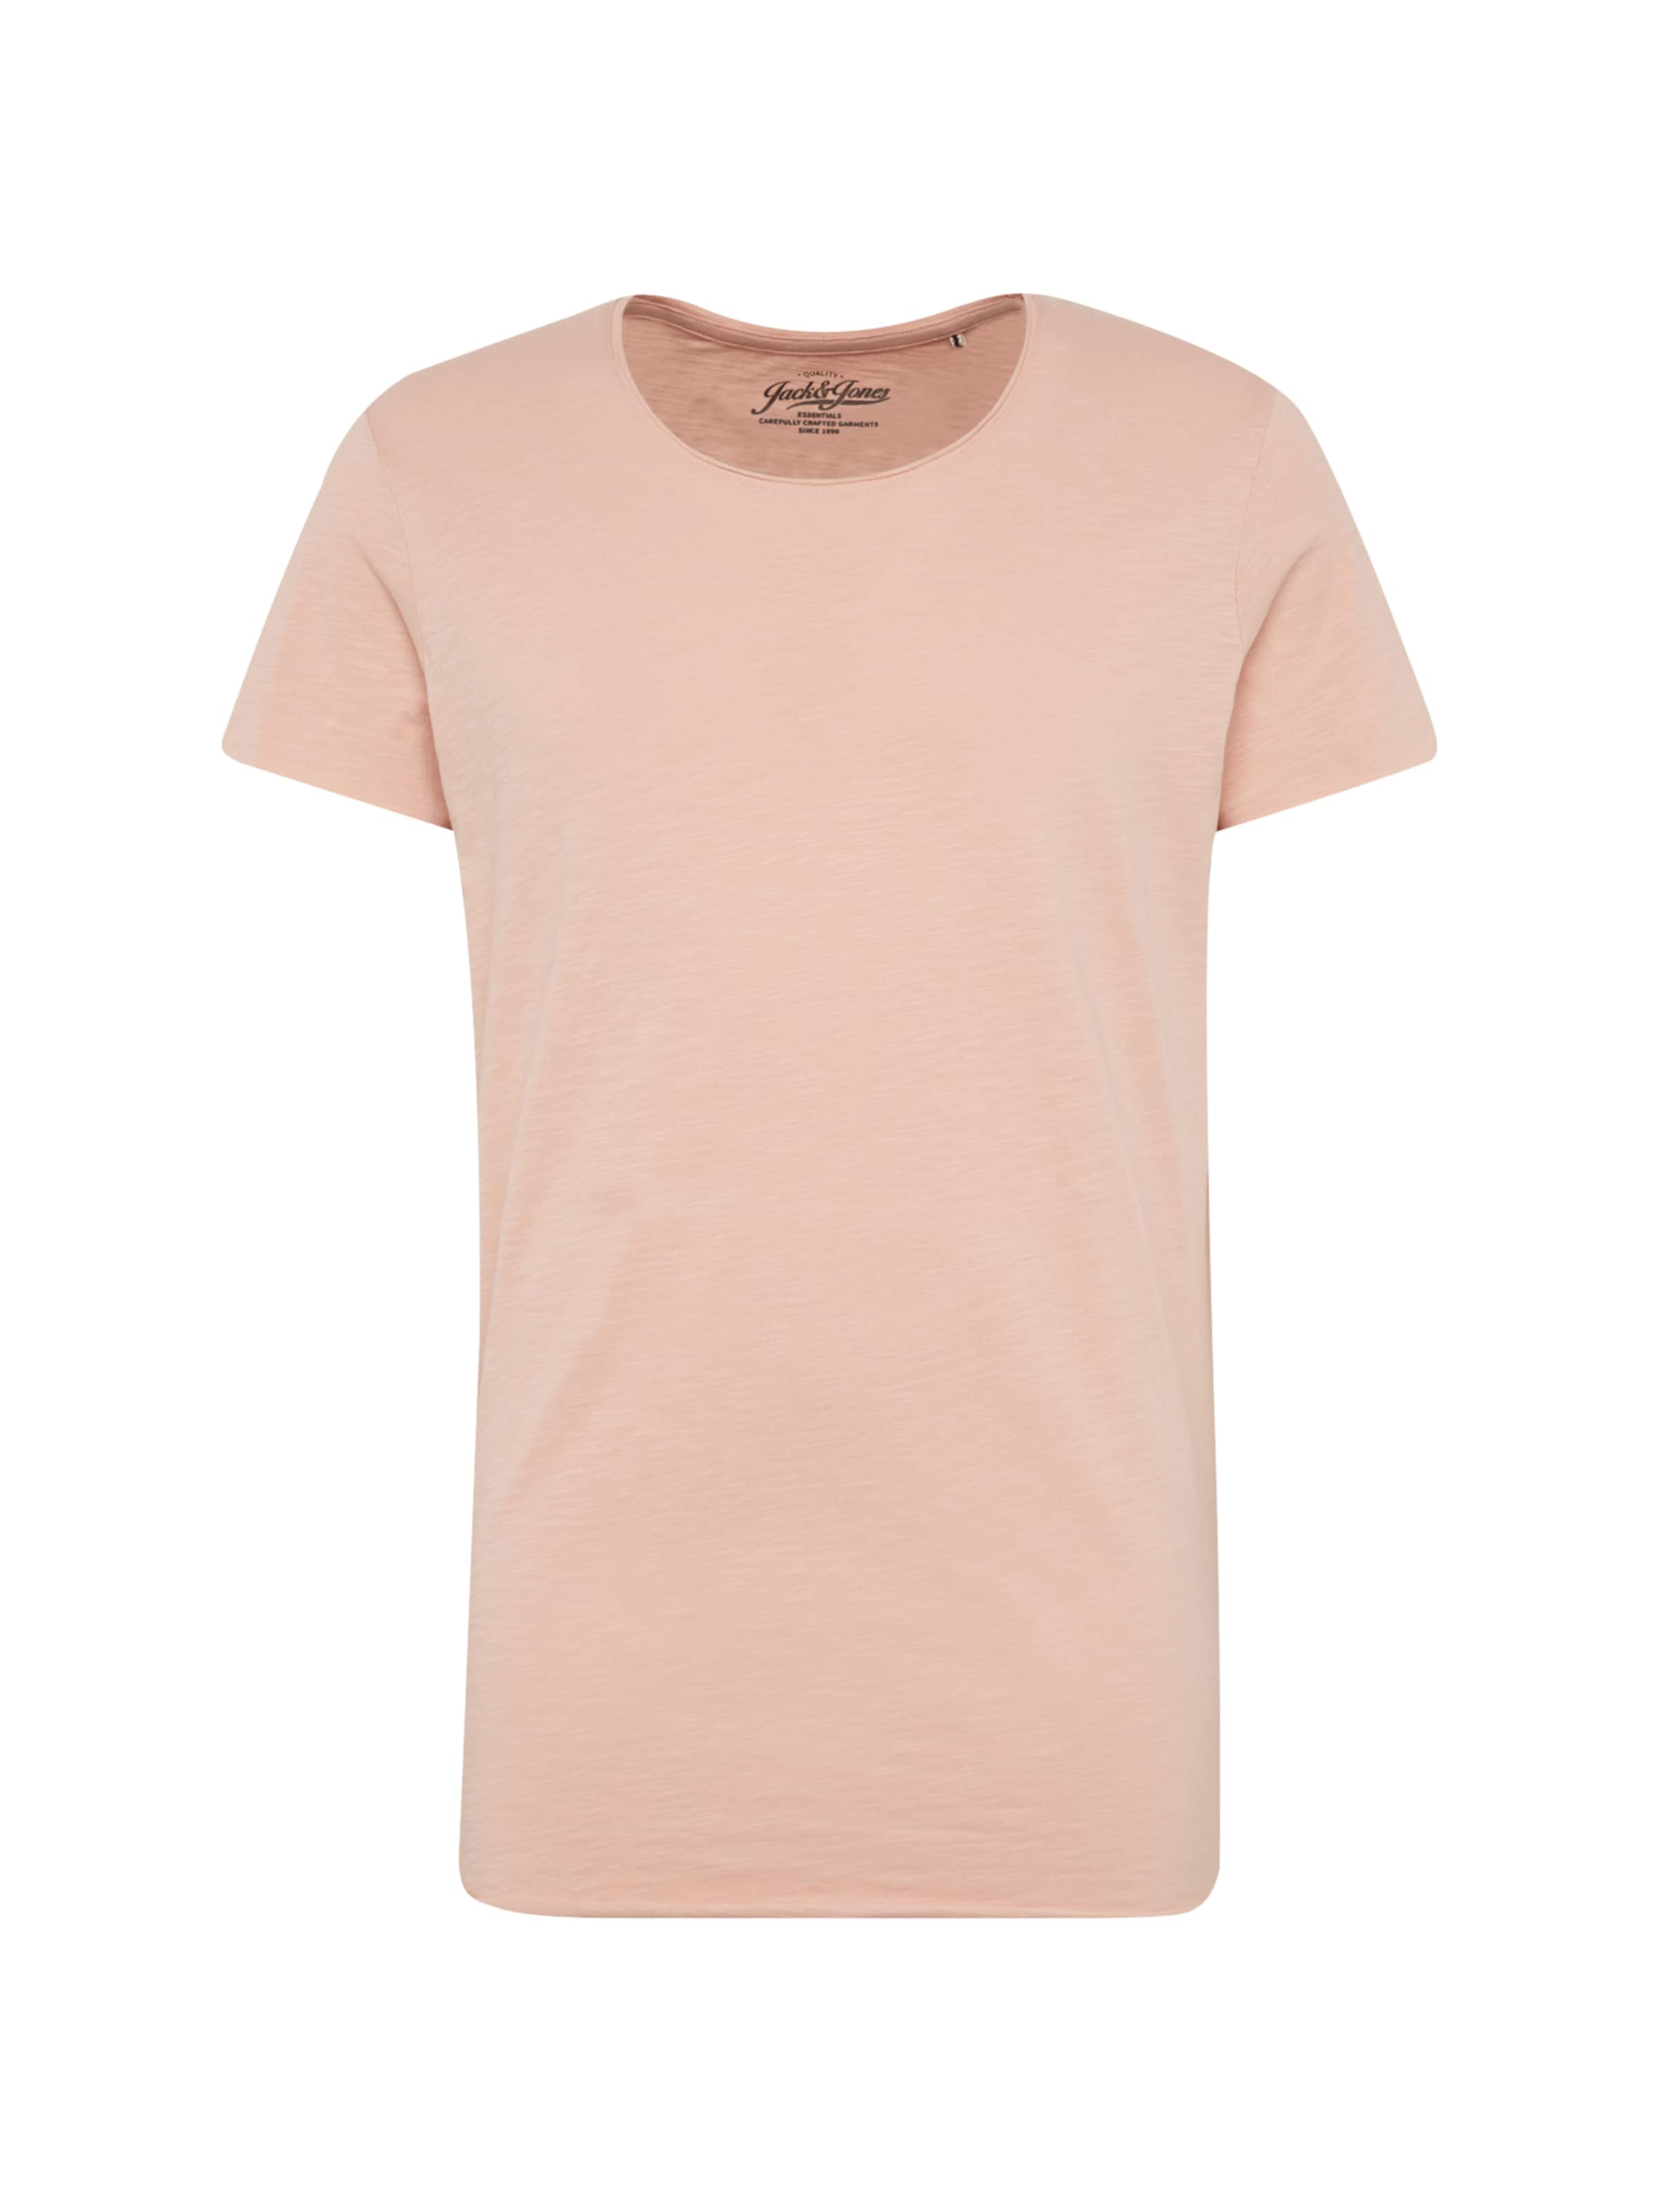 Jones En shirt Ss U Noos' Rose T 'jjebas Ancienne neck Jackamp; Tee wkOn8P0